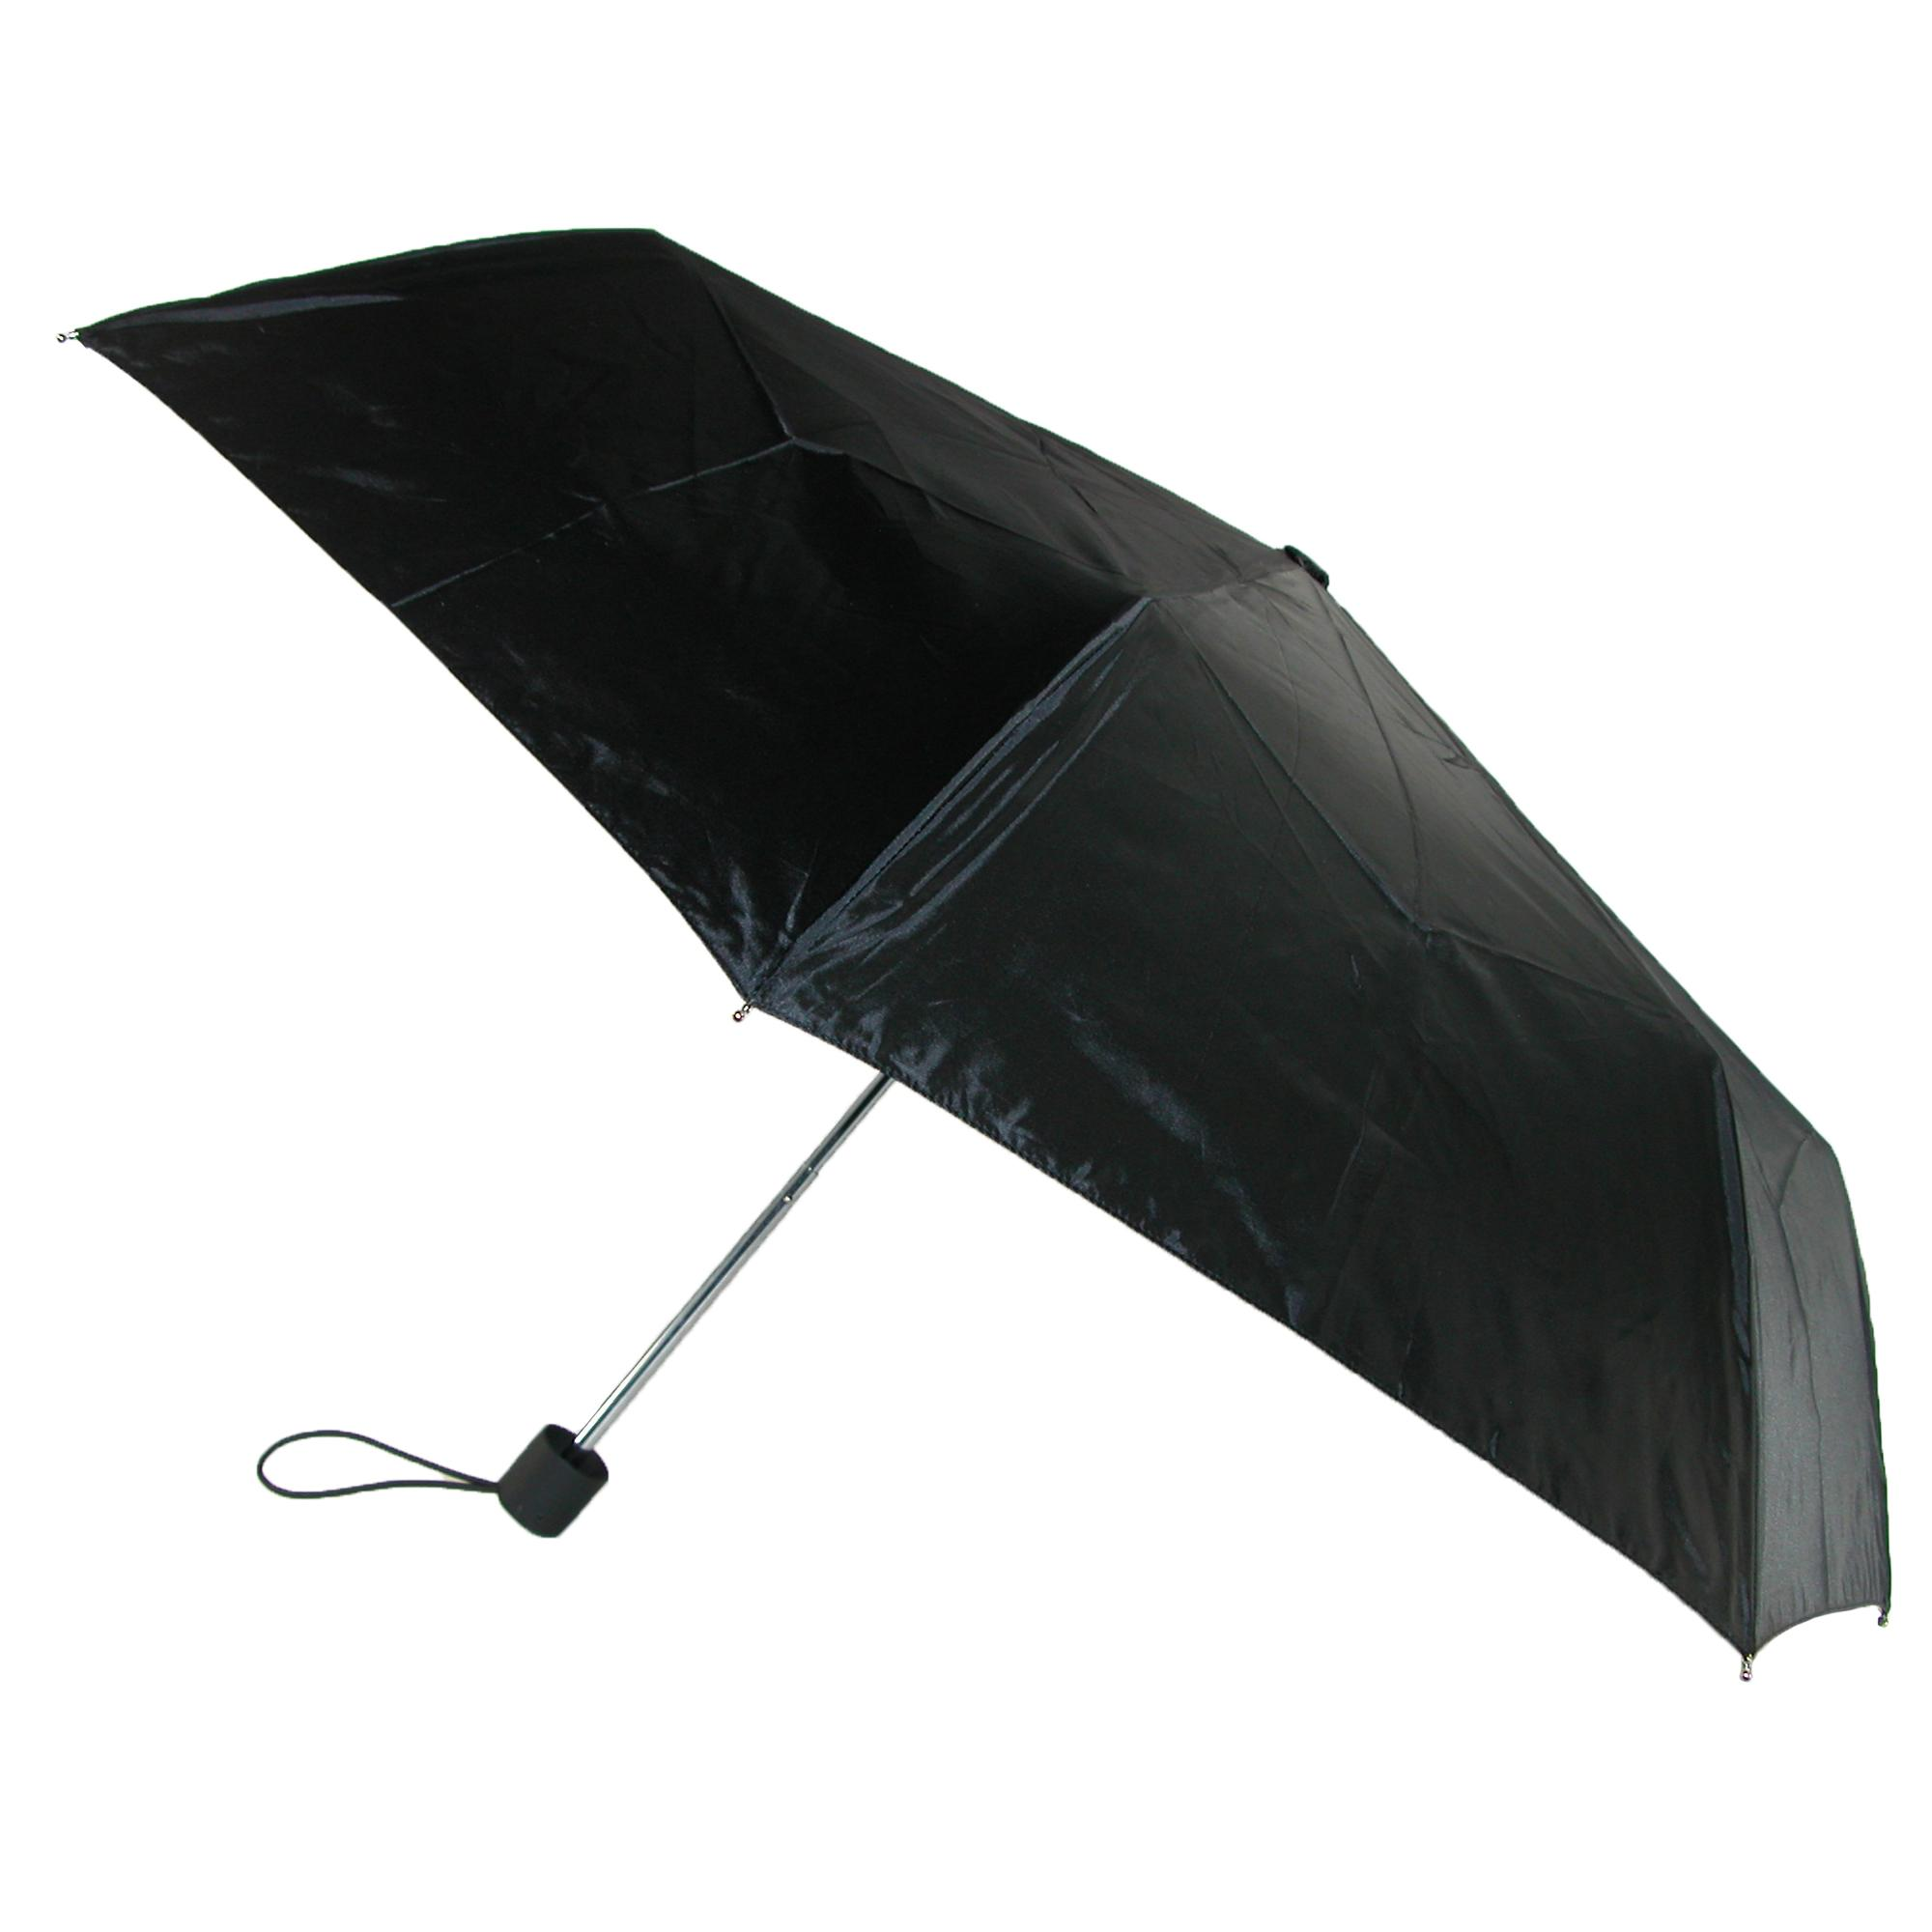 Compact Travel Umbrella Walmart Totes Size One Size Basic Manual Open And Close Solid